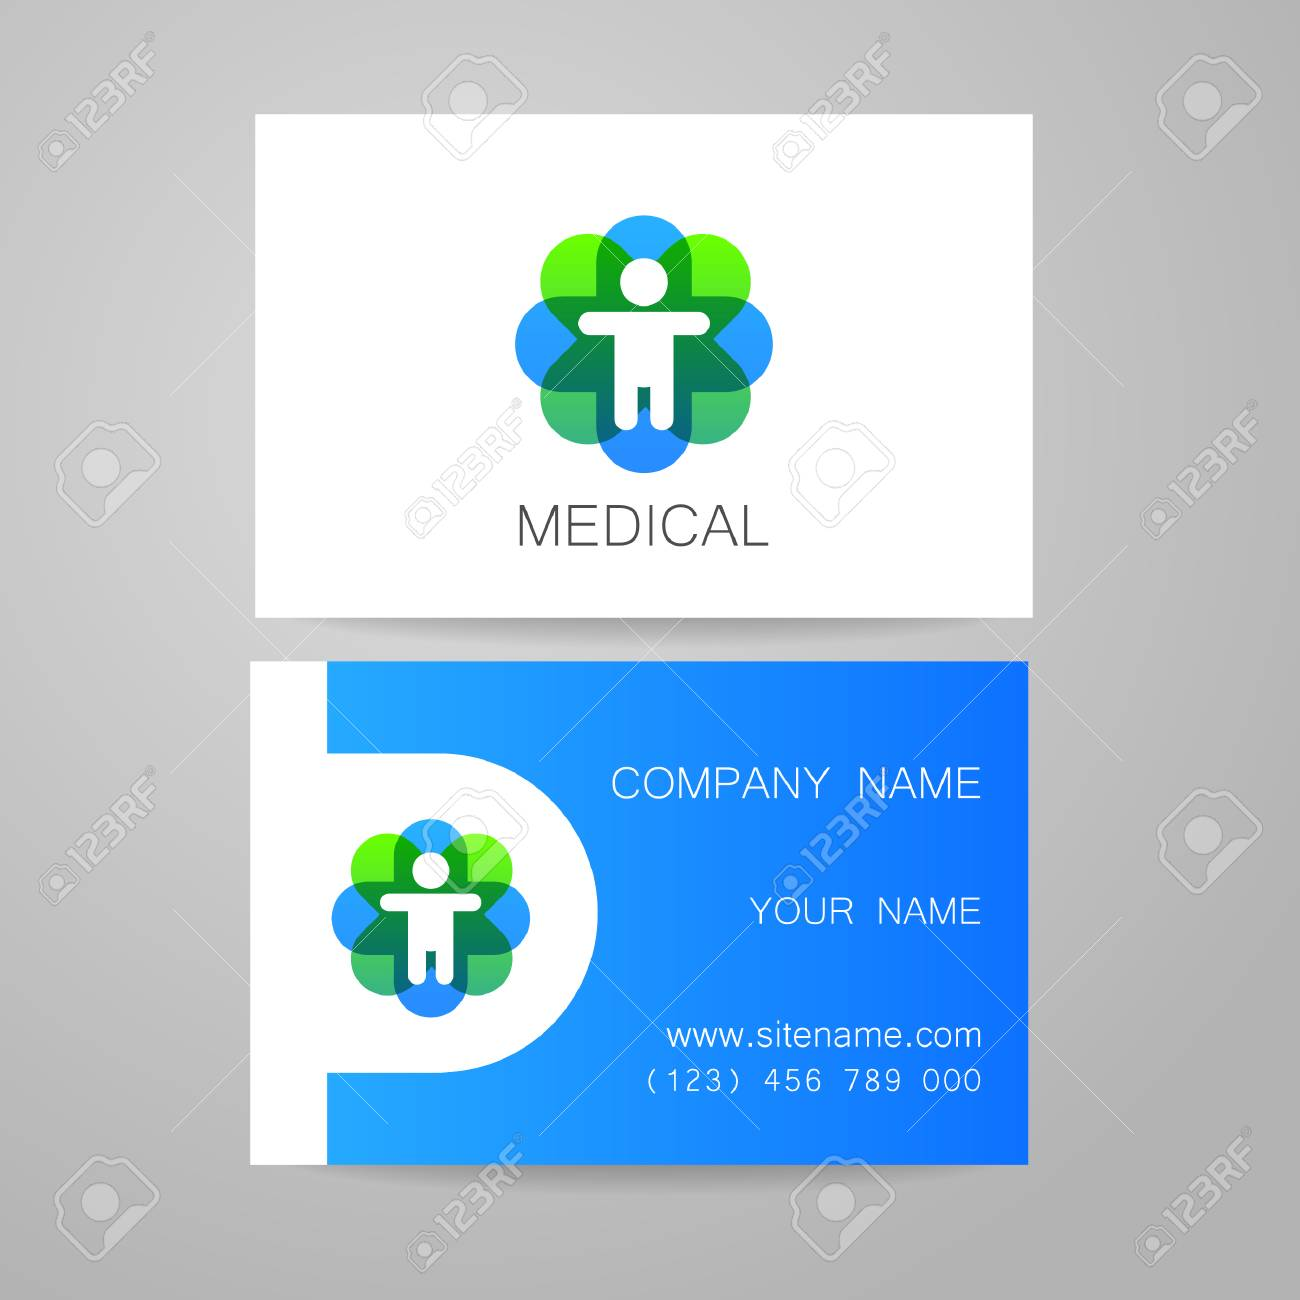 Template Of Medical Business Cards. Royalty Free Cliparts, Vectors ...